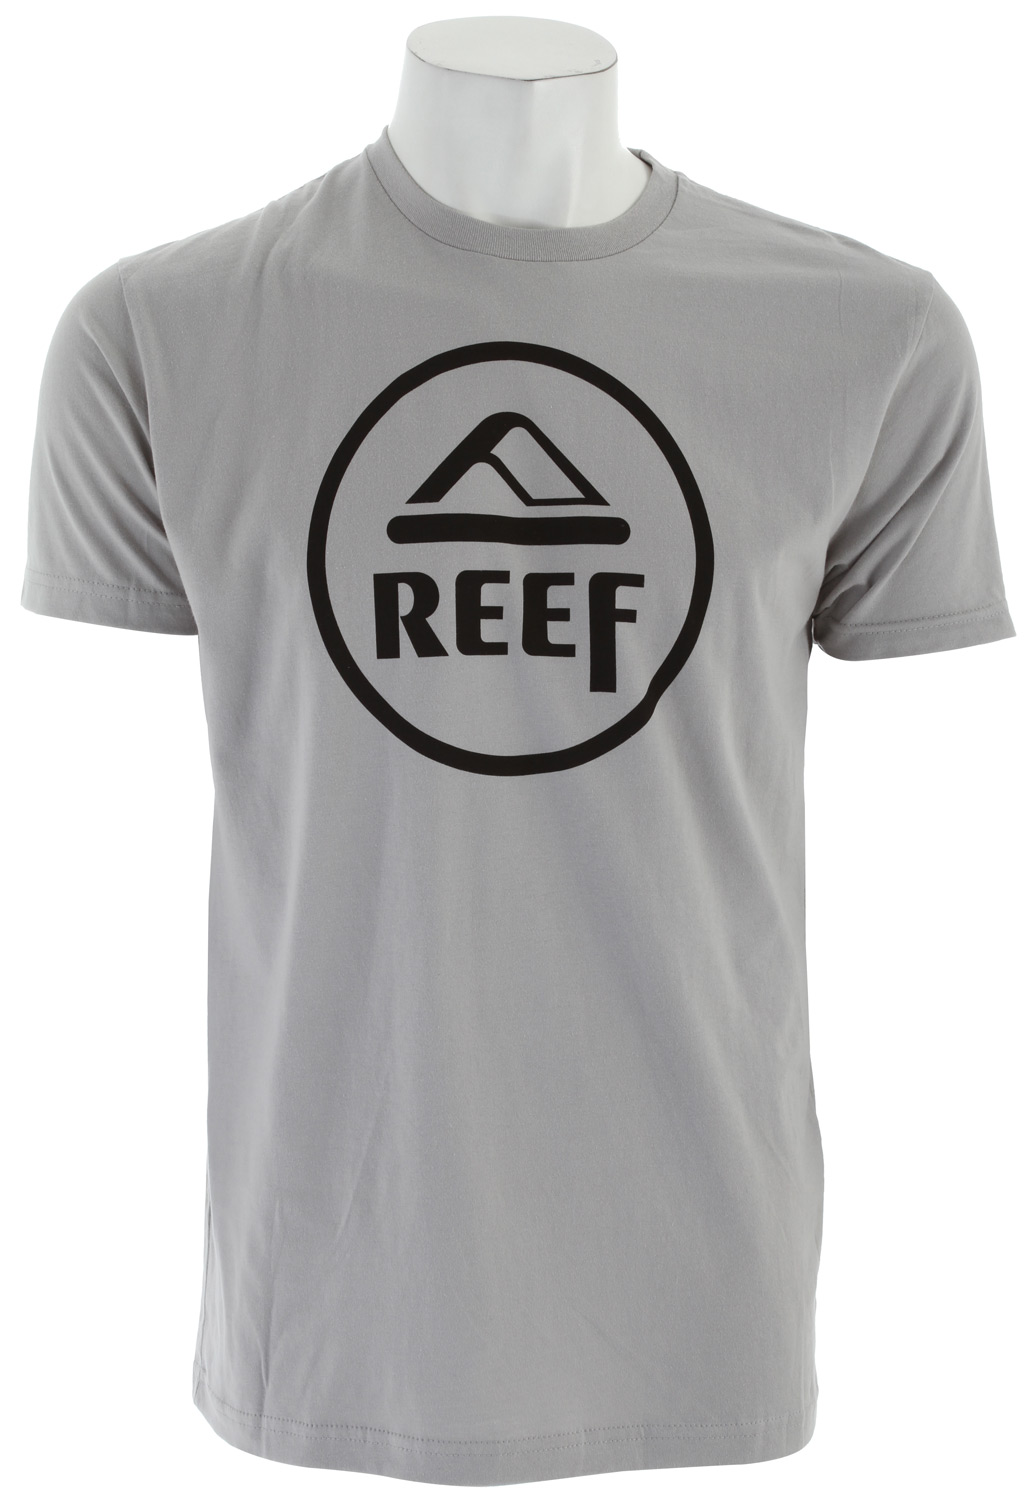 Surf Key Features of The Reef Vintage Circle T-Shirt: Slim Fit Crew Neck Short Sleeve 100% cotton Center front screen print - $22.00